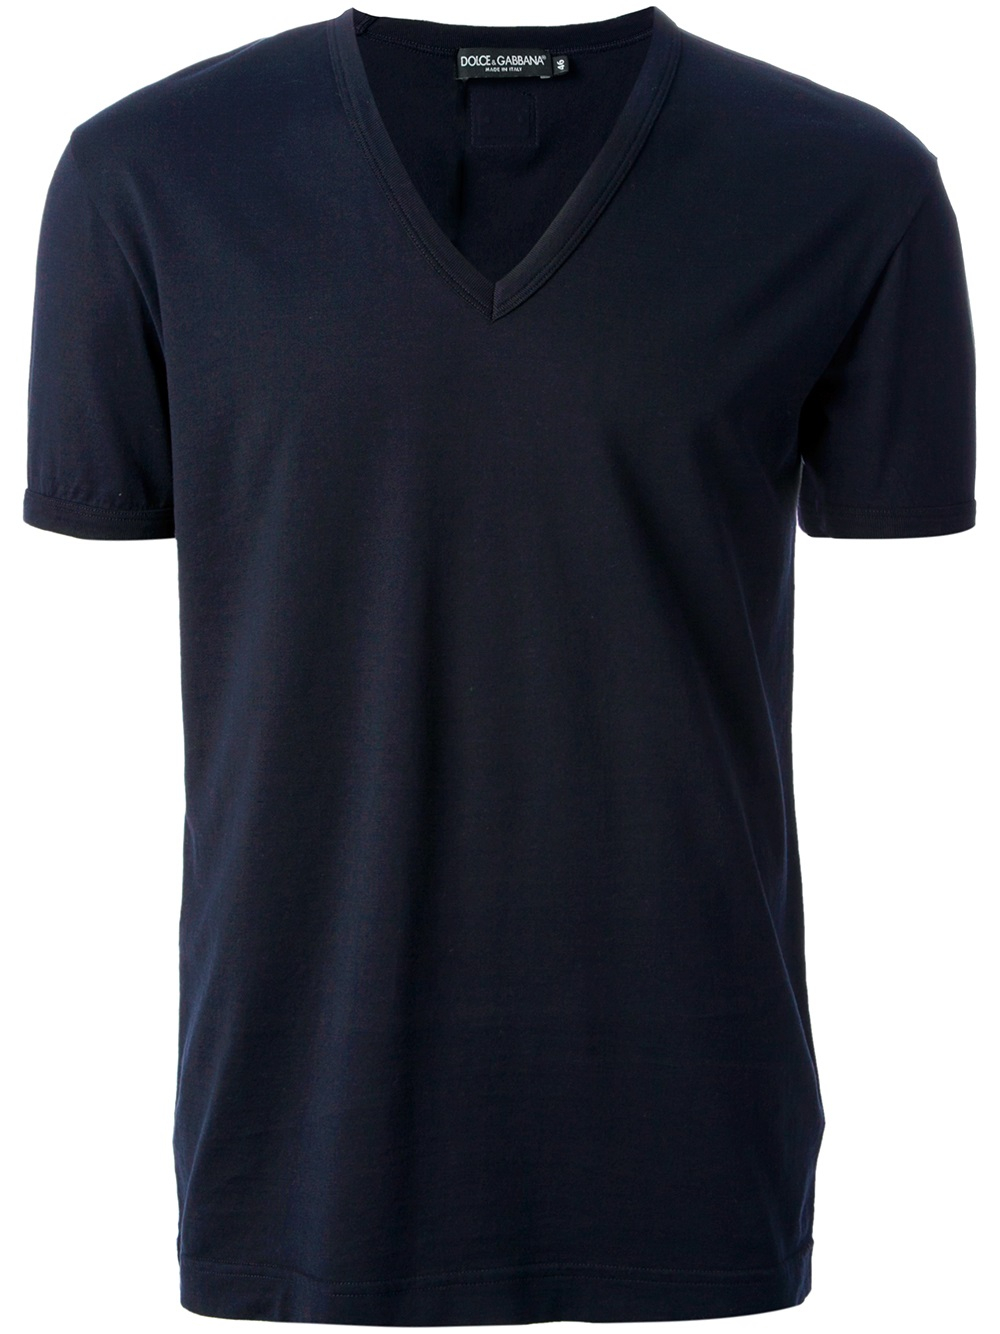 Dolce Gabbana Vneck Tshirt In Blue For Men Lyst